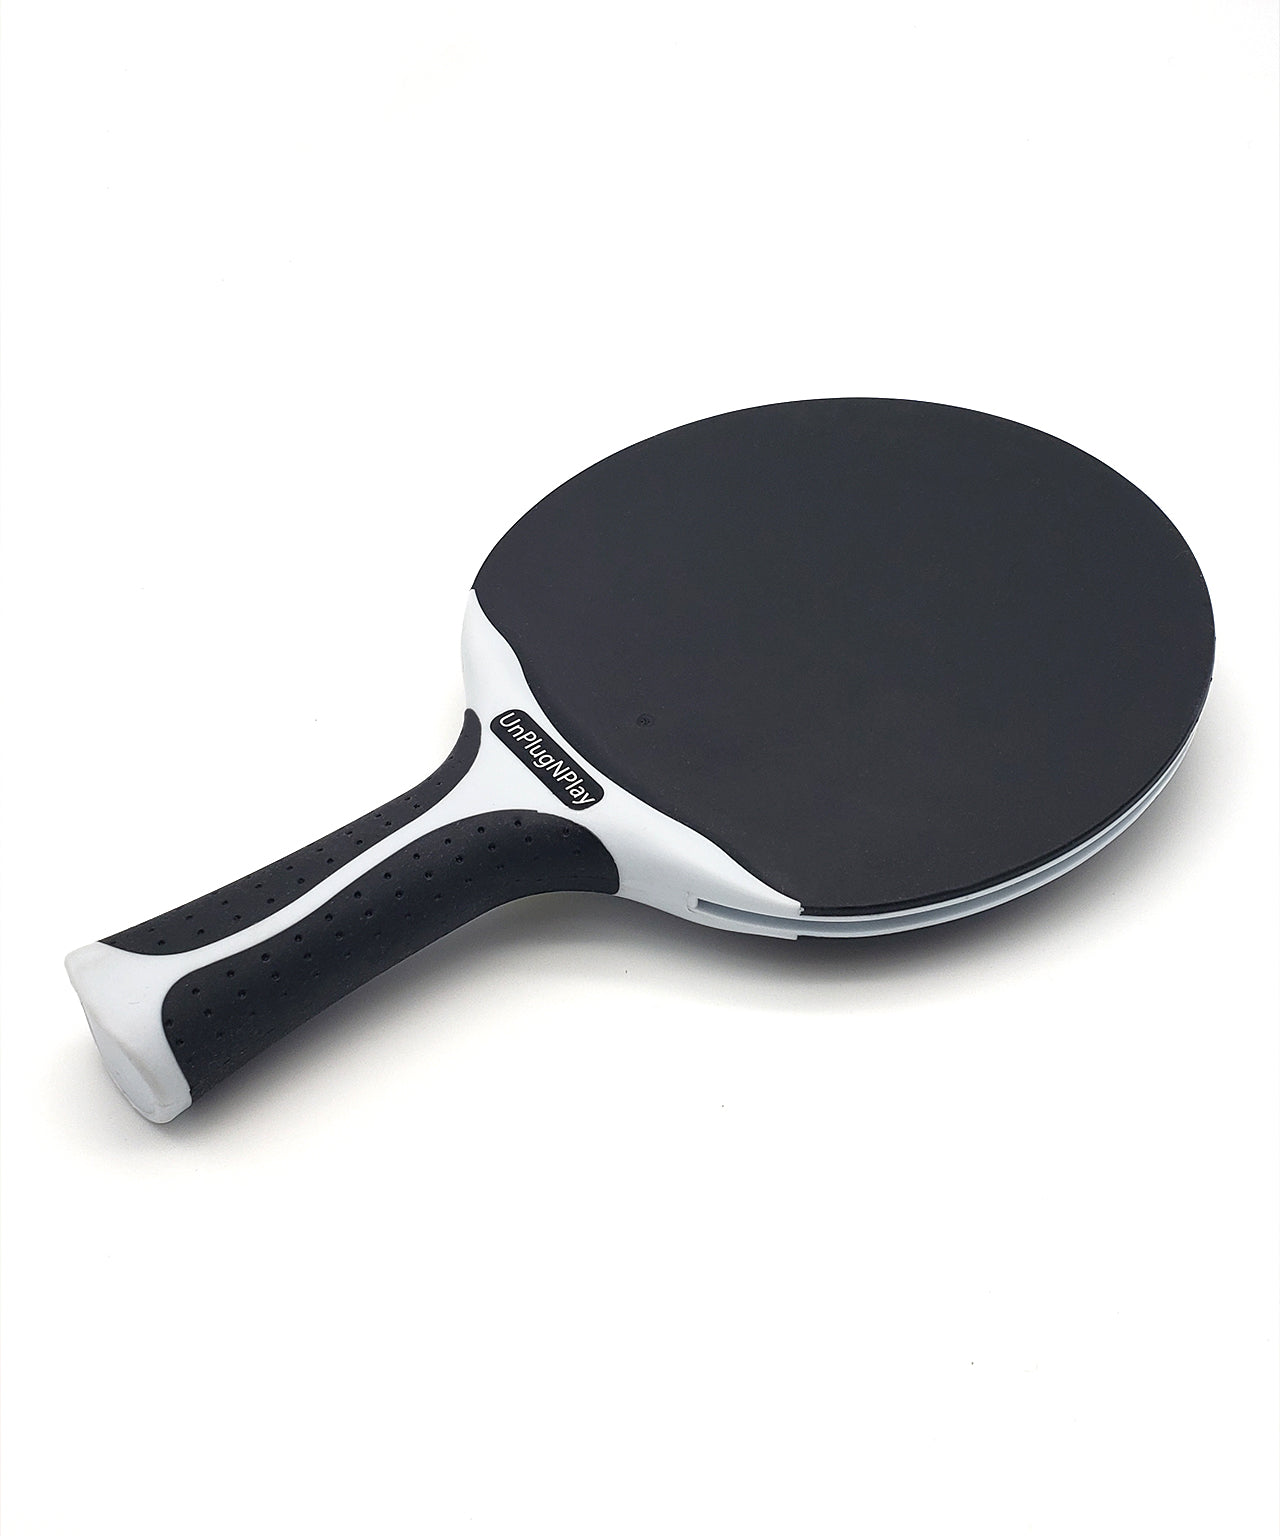 Killerspin Outdoor Ping Pong Paddle Canvas Swirl Black - UnPlugNPlay